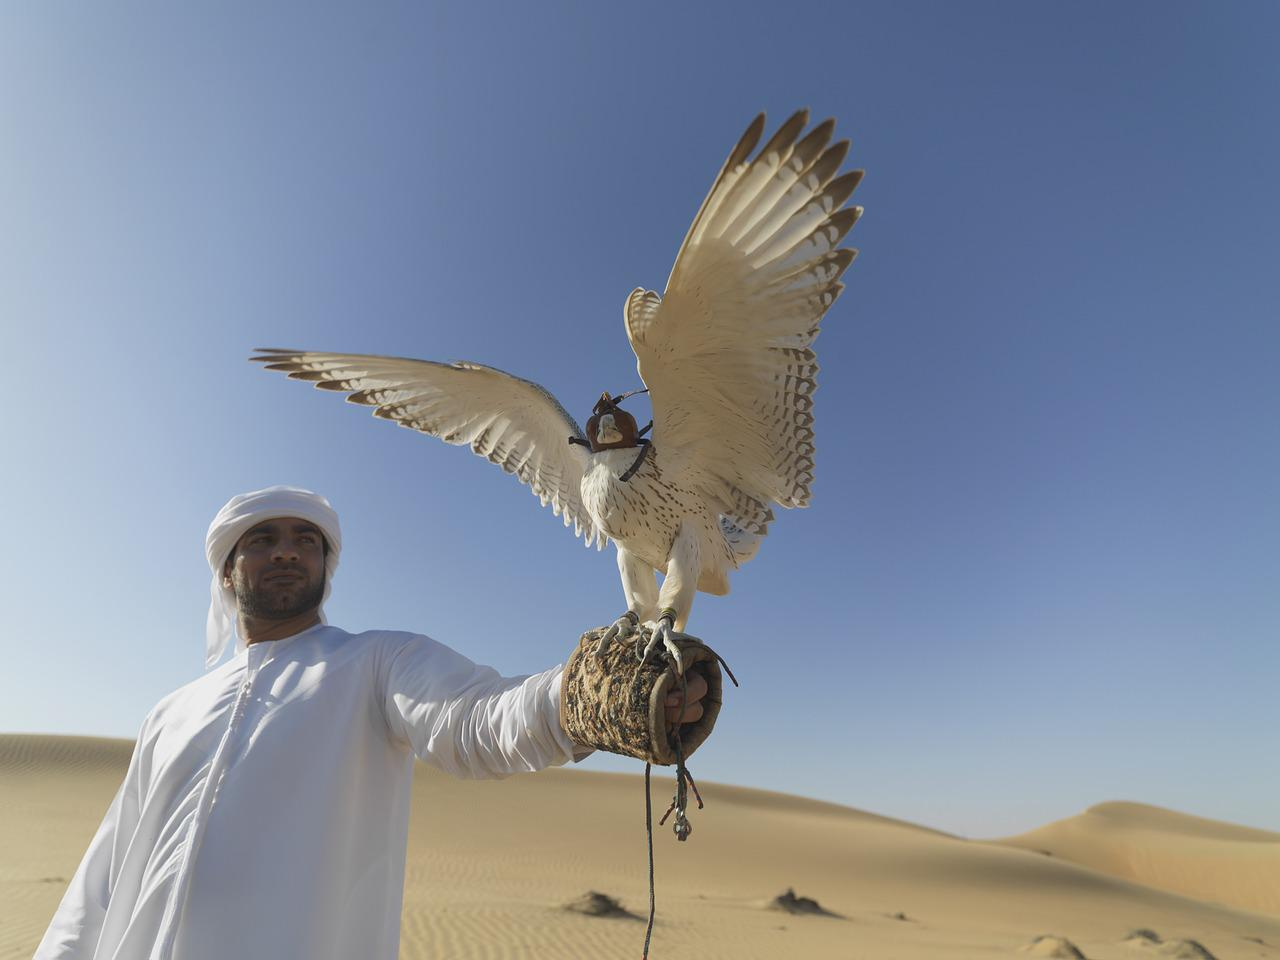 """Some US airports use falconry (hunting of game with falcons) """"to scare off birds that can be hazardous for airplanes."""""""